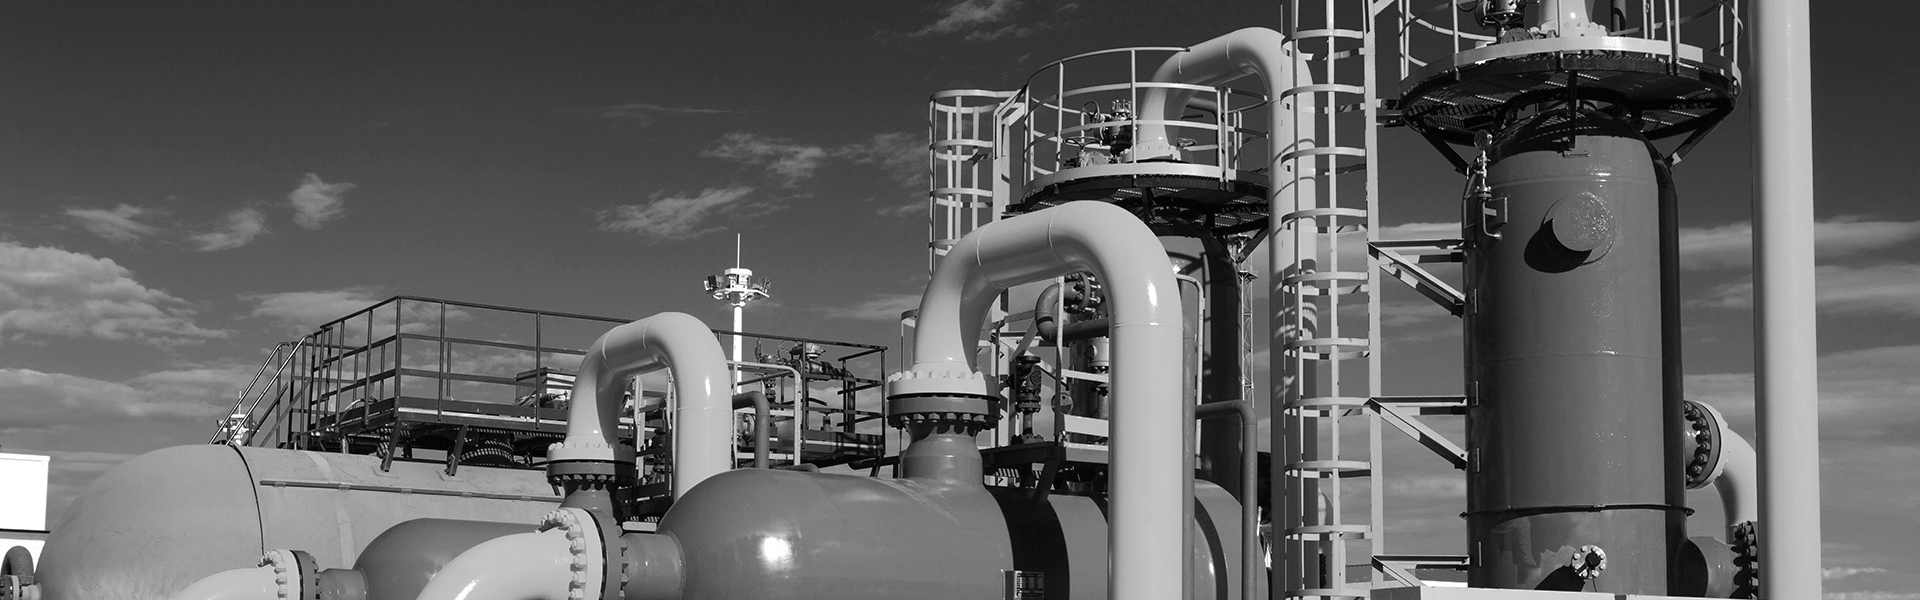 Protective coatings for the petrochemical industry | US Coatings